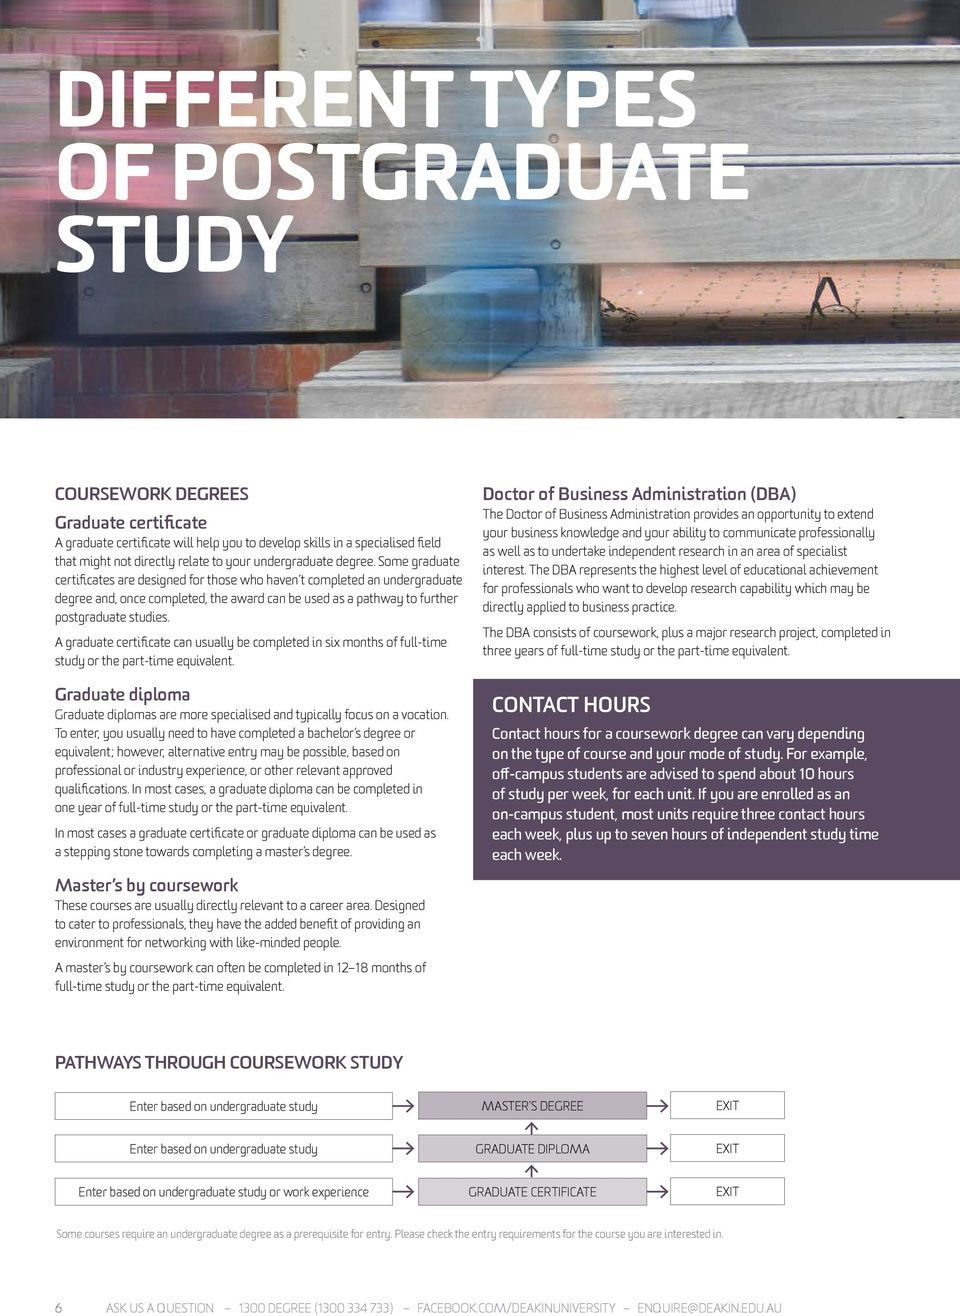 Some graduate certificates are designed for those who haven t completed an undergraduate degree and, once completed, the award can be used as a pathway to further postgraduate studies.